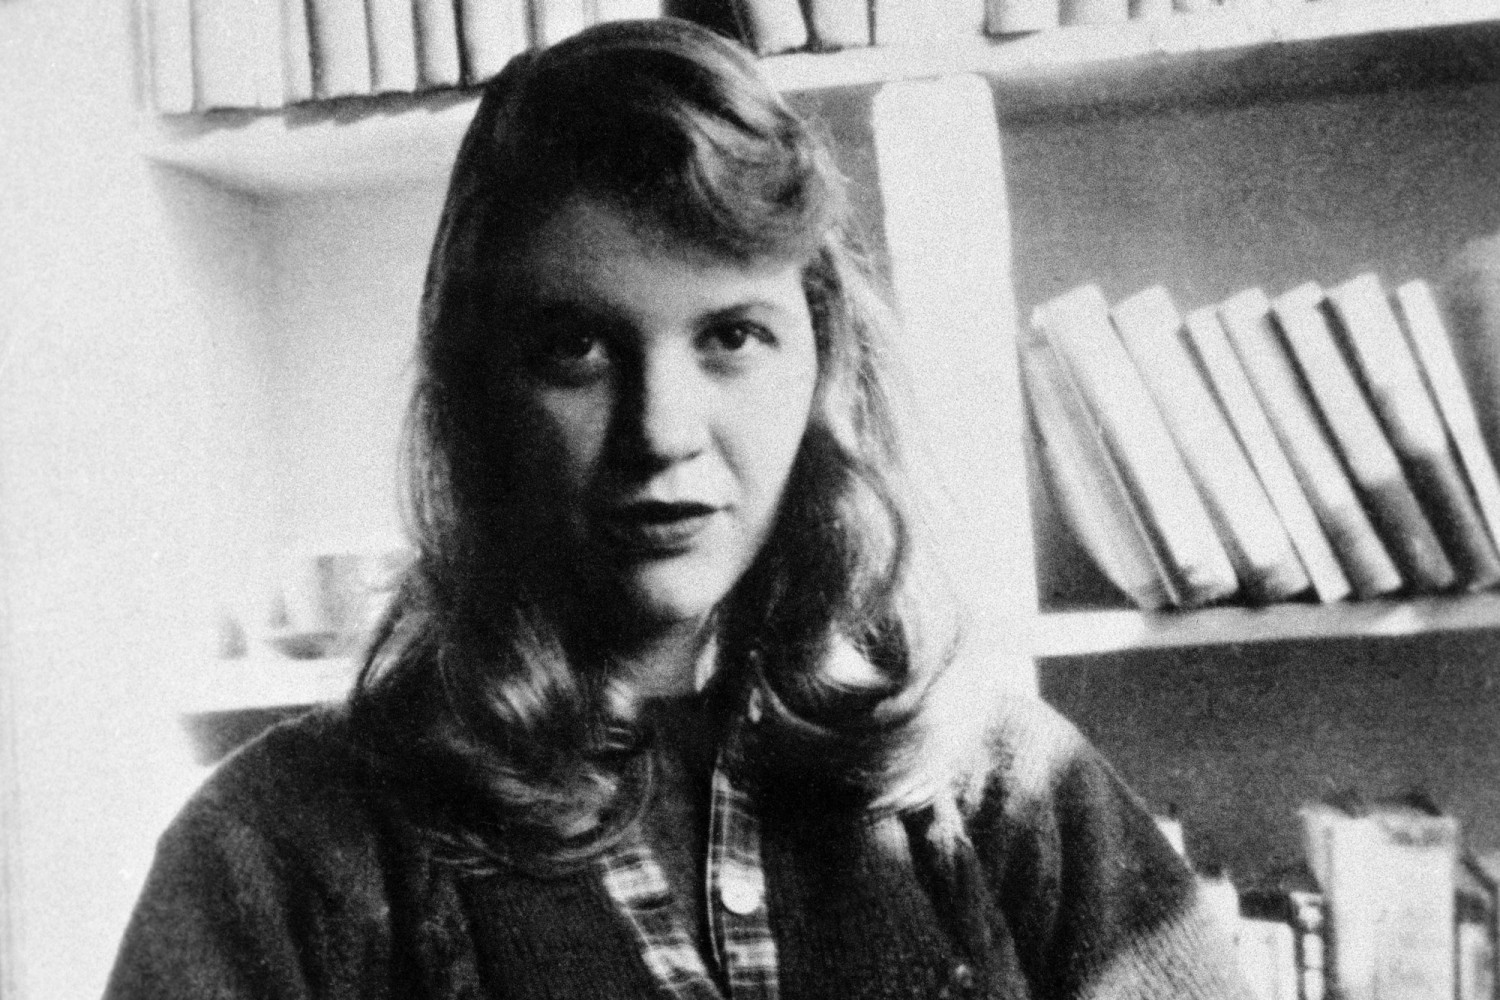 eight writers who suffered from mental illness sylvia plath 1932 1963 also a likely bipolar sufferer submerged into a massive suicidal depression in college after some of her initial success as a